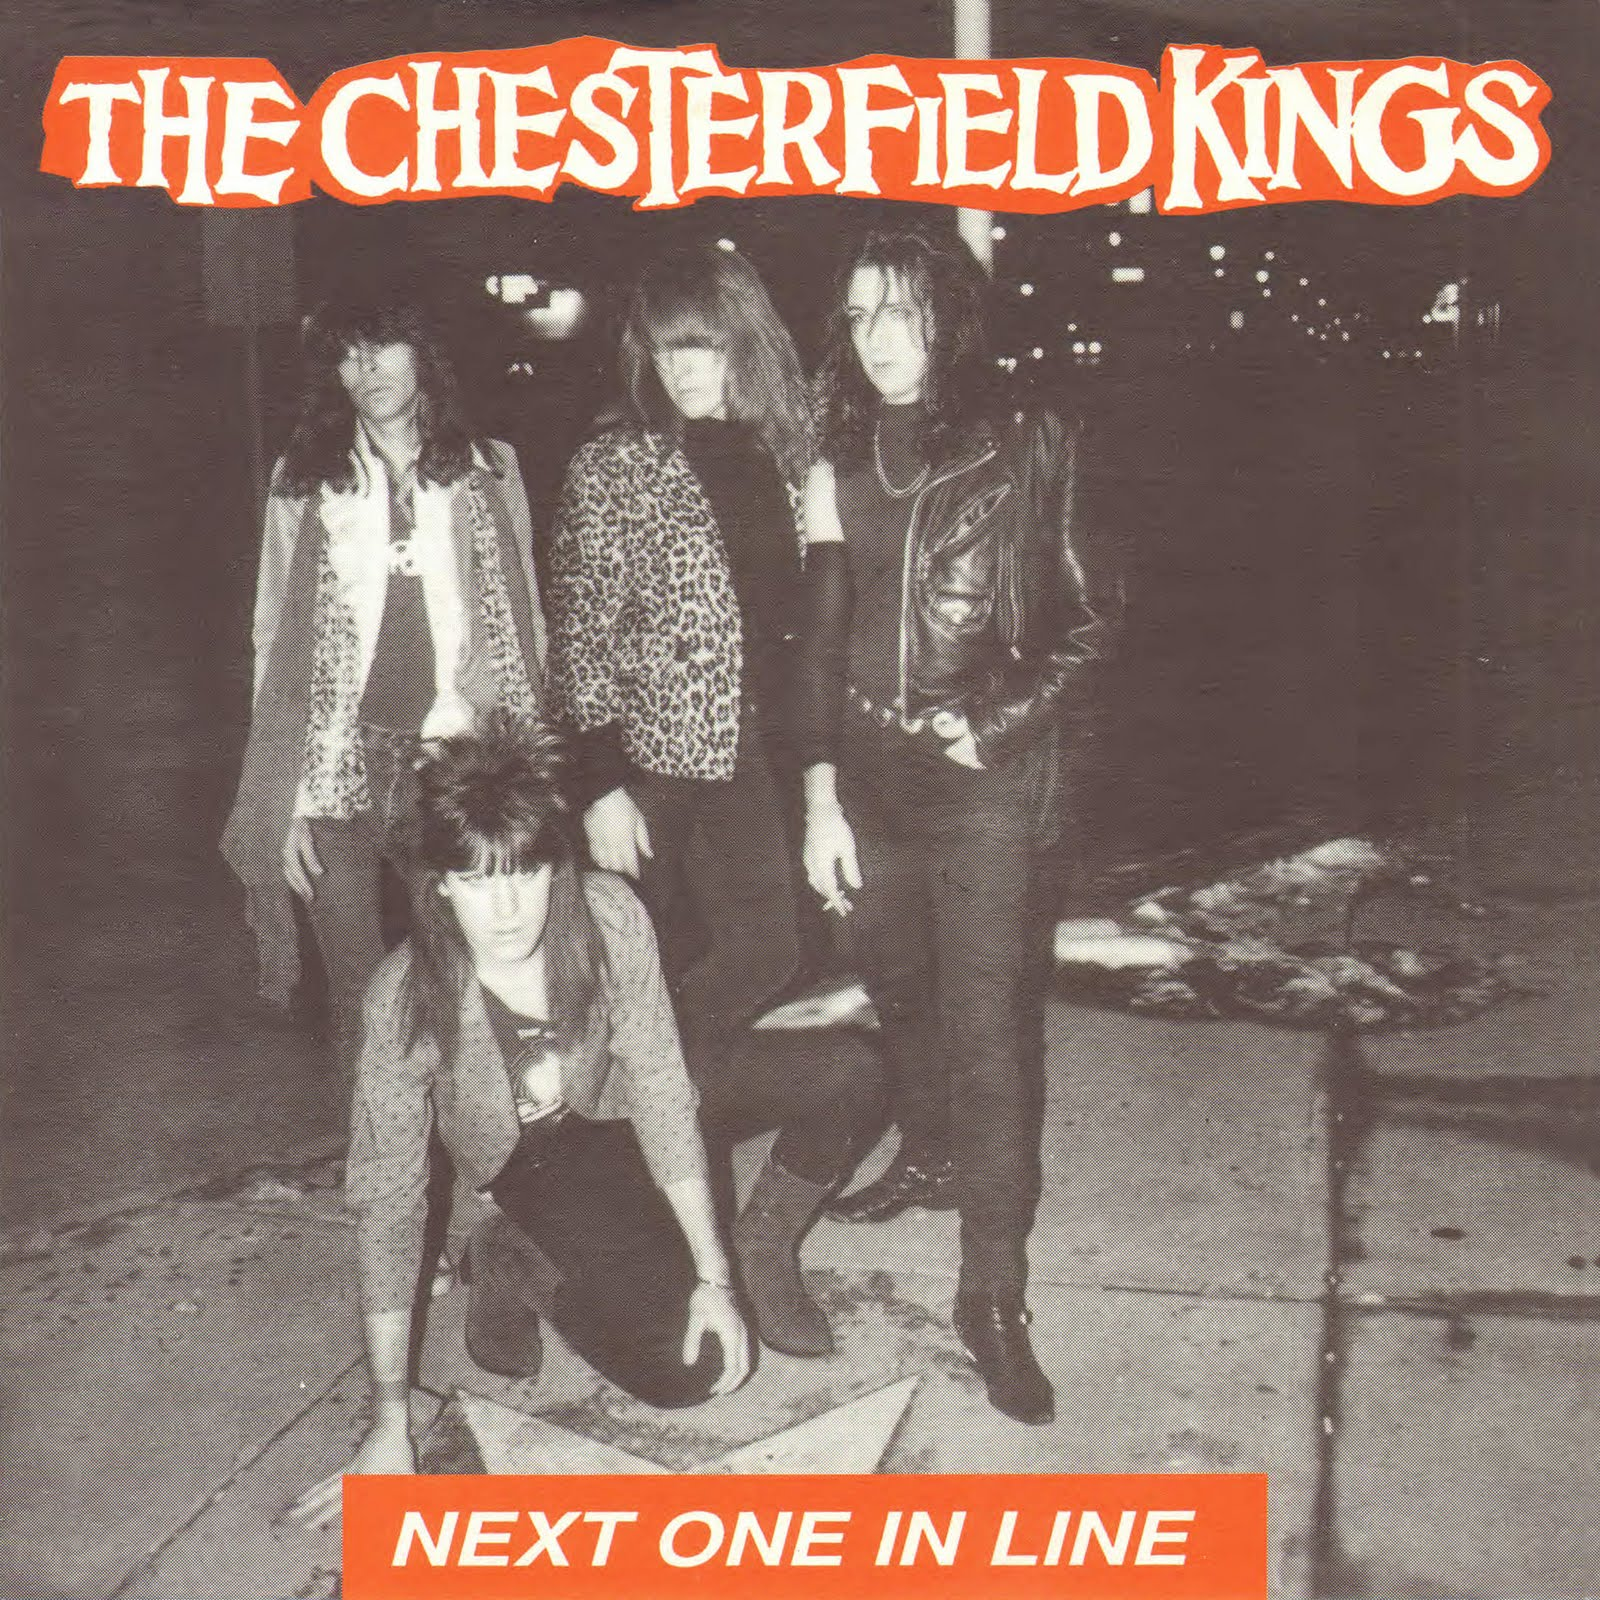 HOLA SOY EXTRATERRESTRE, ME ENSEÑAS ? - Página 28 Chesterfield+kings+next+one+in+line+front